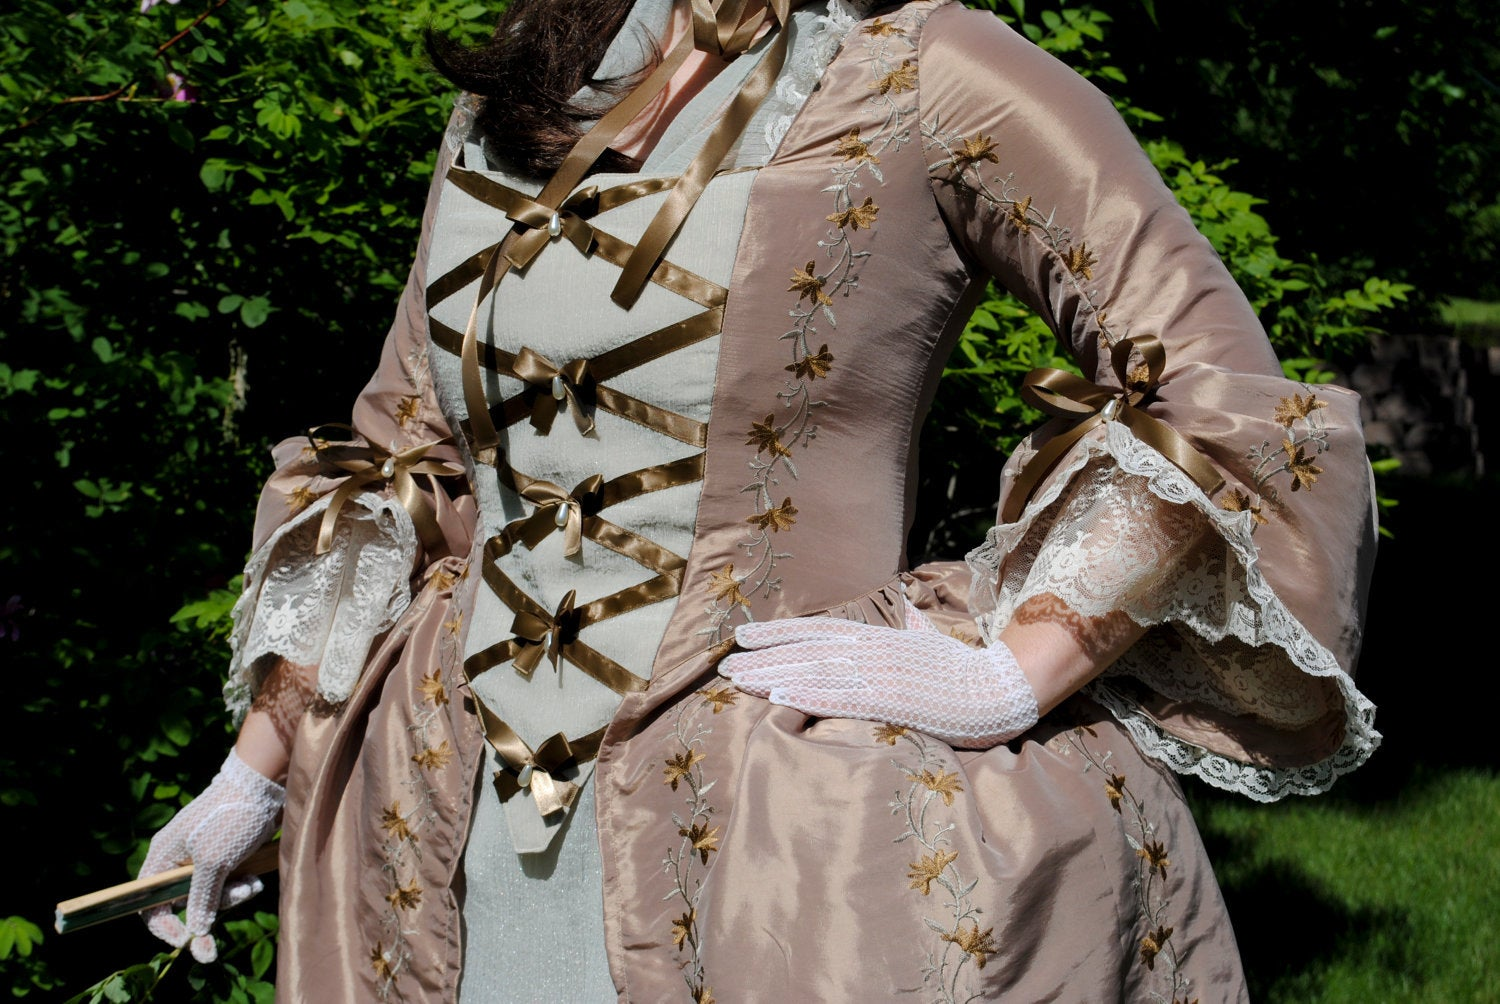 CUSTOM Colonial 18th Century Rococo Dress Gown 1700s outfit embroidered taffeta